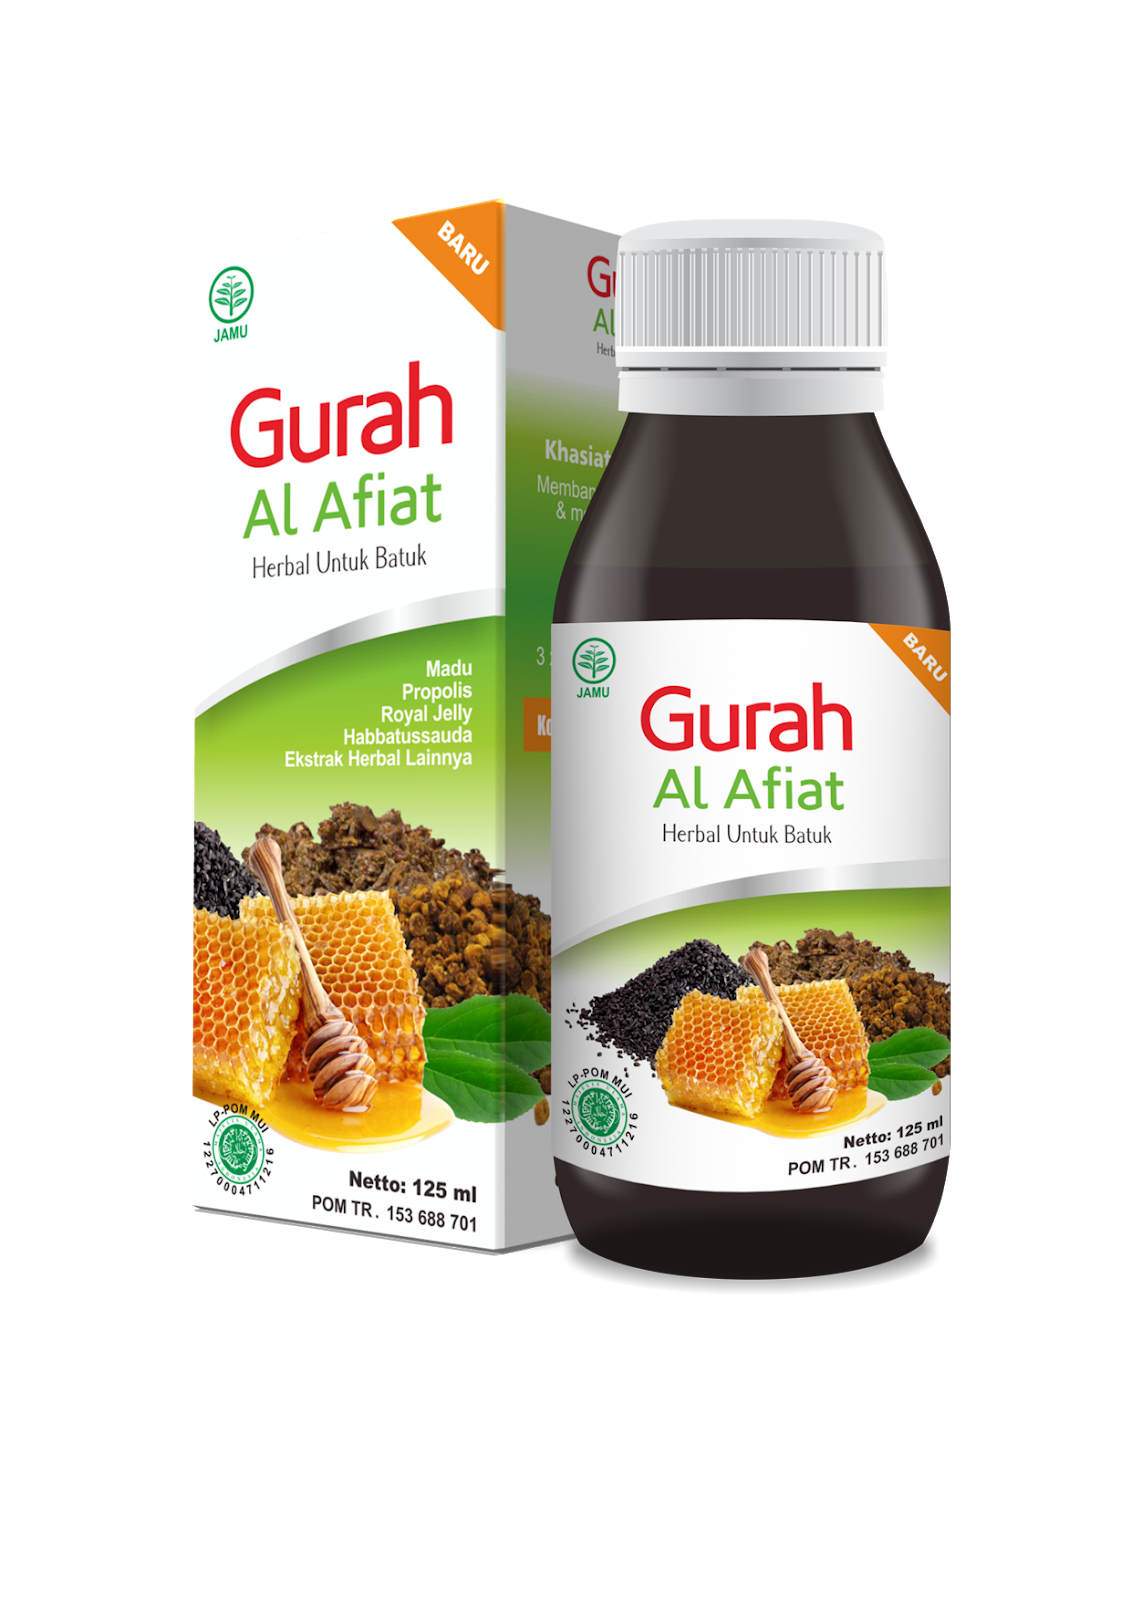 GURAH AL-AFIAT[HERBAL FLU & BATUK]